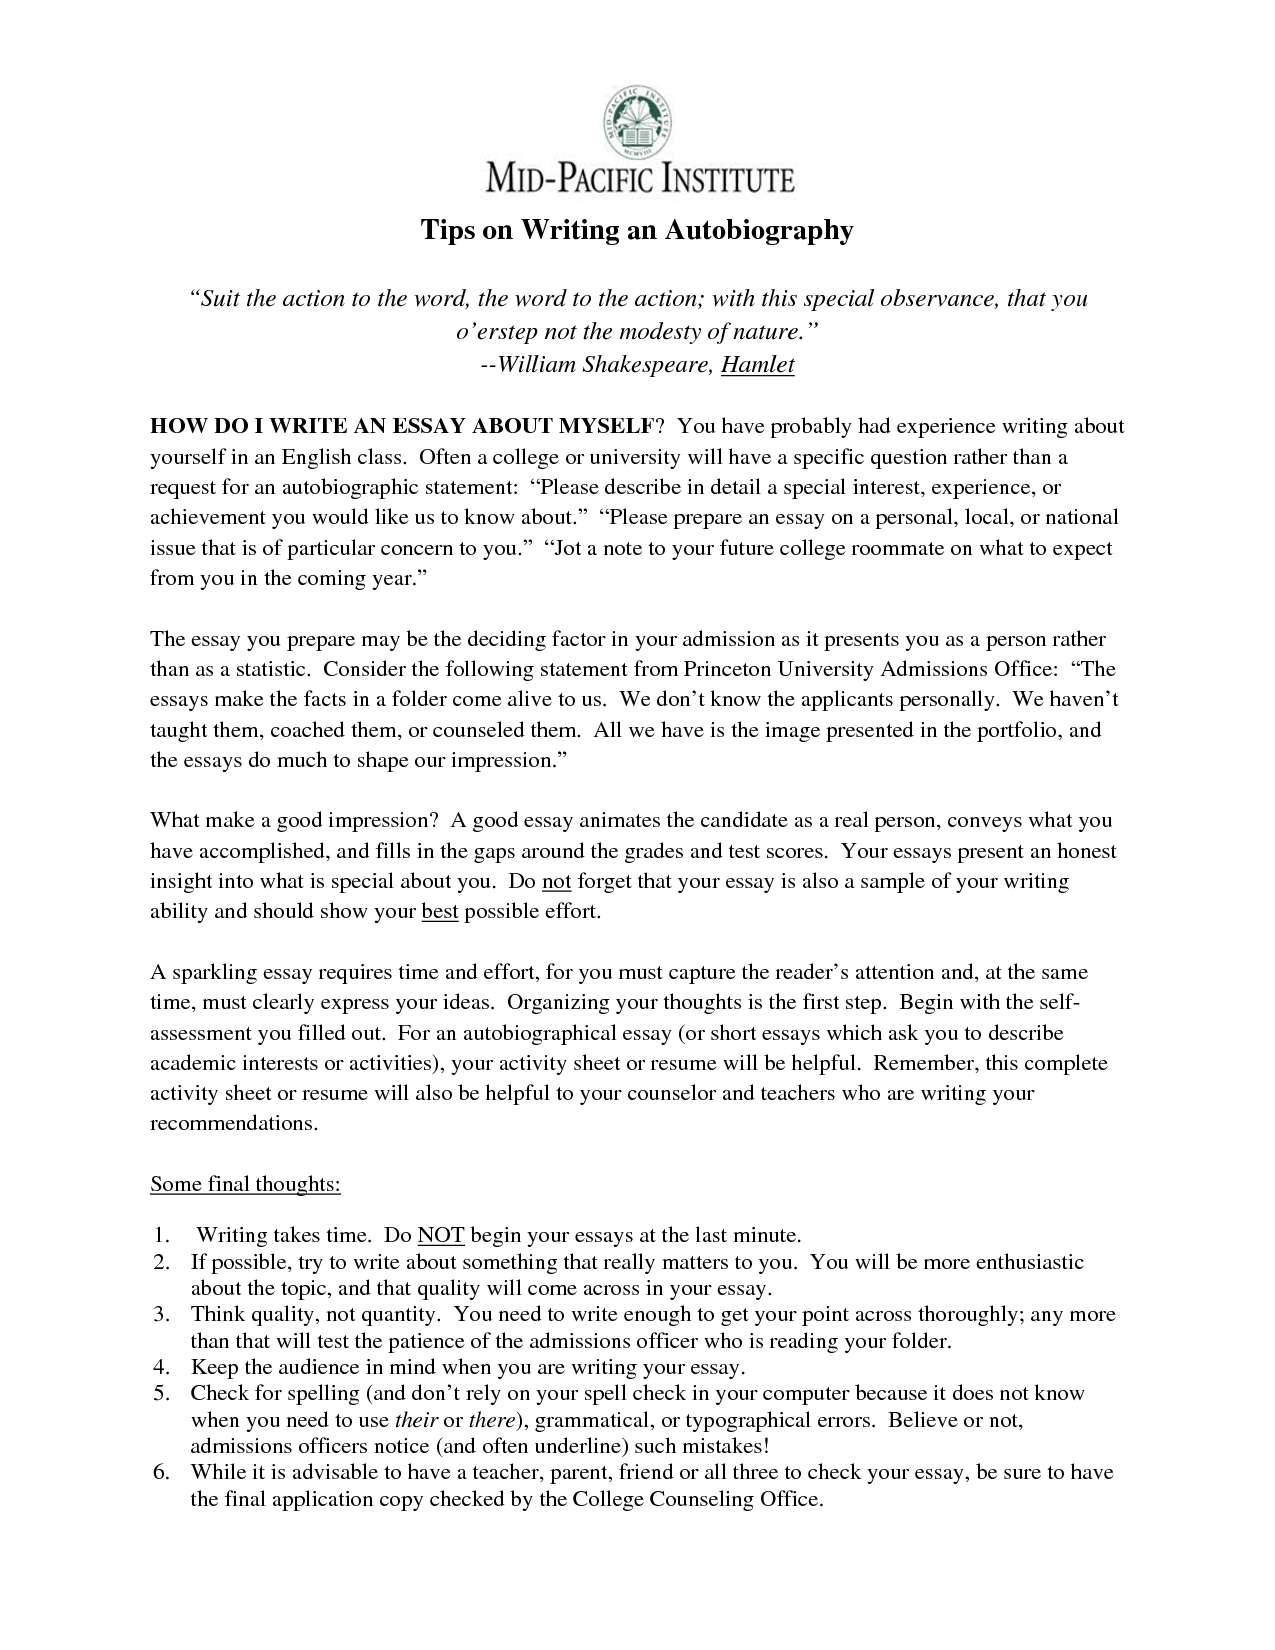 012 Tips To Write Good Essay Help Me An About Myself How For Writing Persuasive With English L College Great Scholarship Narrative Sat Application Argumentative Marvelous A In Exam Full